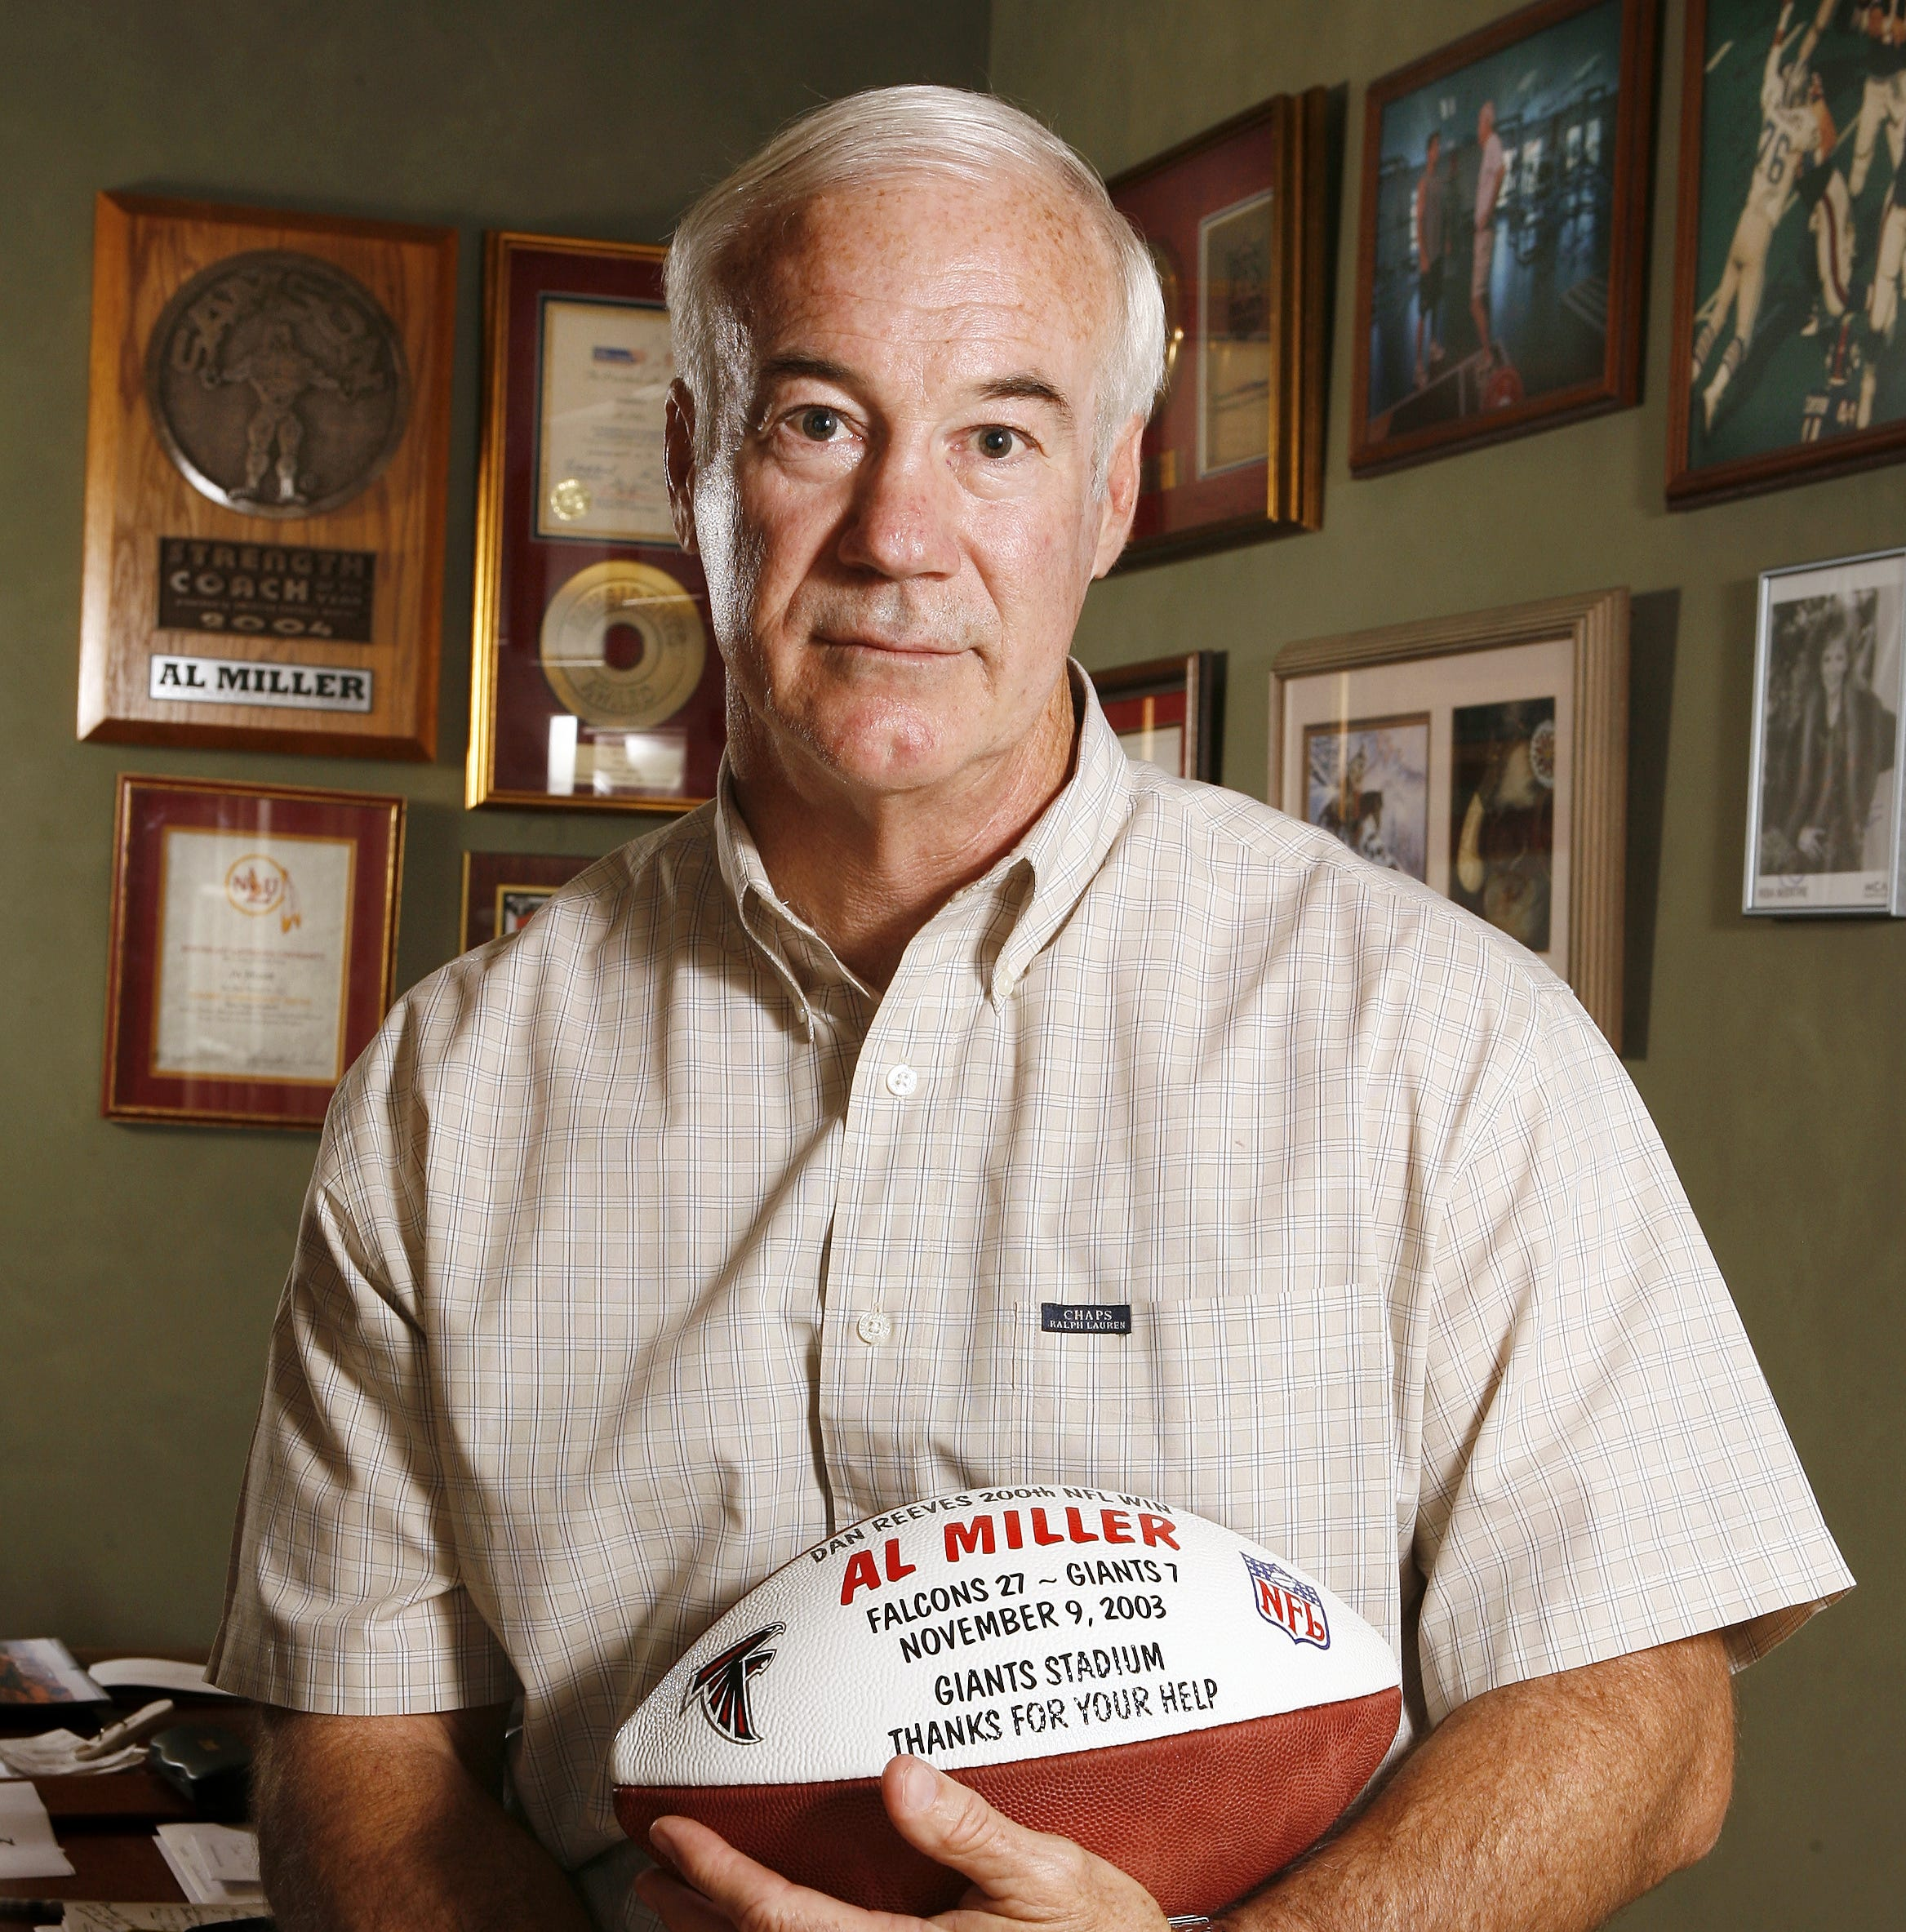 Strength pioneer Al Miller tells the secrets of 'The System' in new book